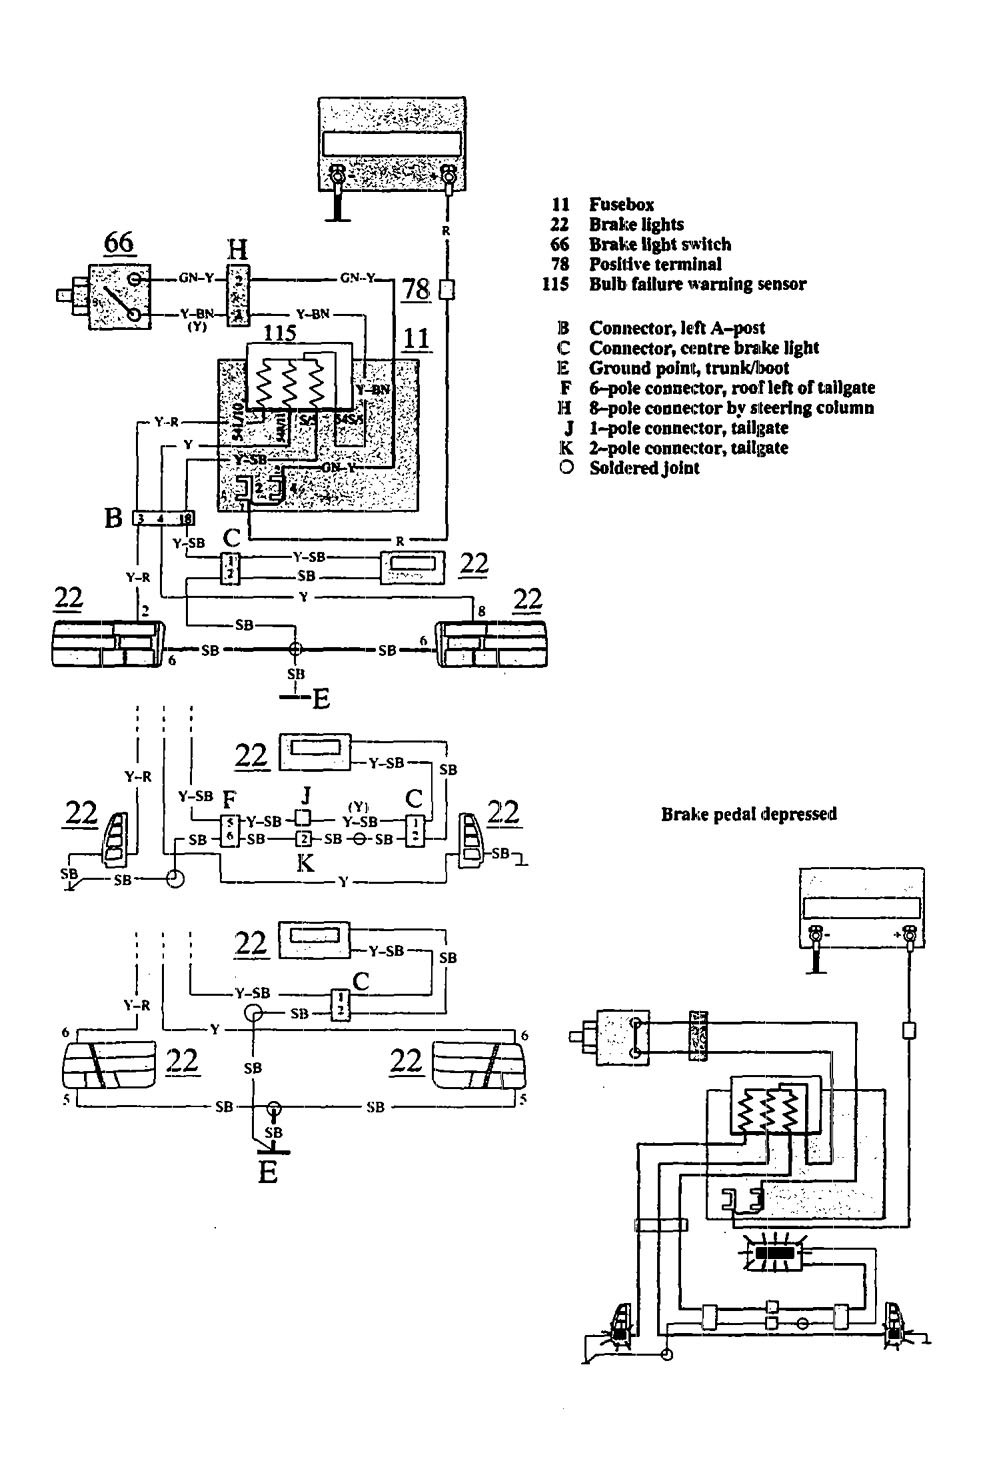 Volvo 940 1991 Wiring Diagrams Stop Lamp Carknowledge